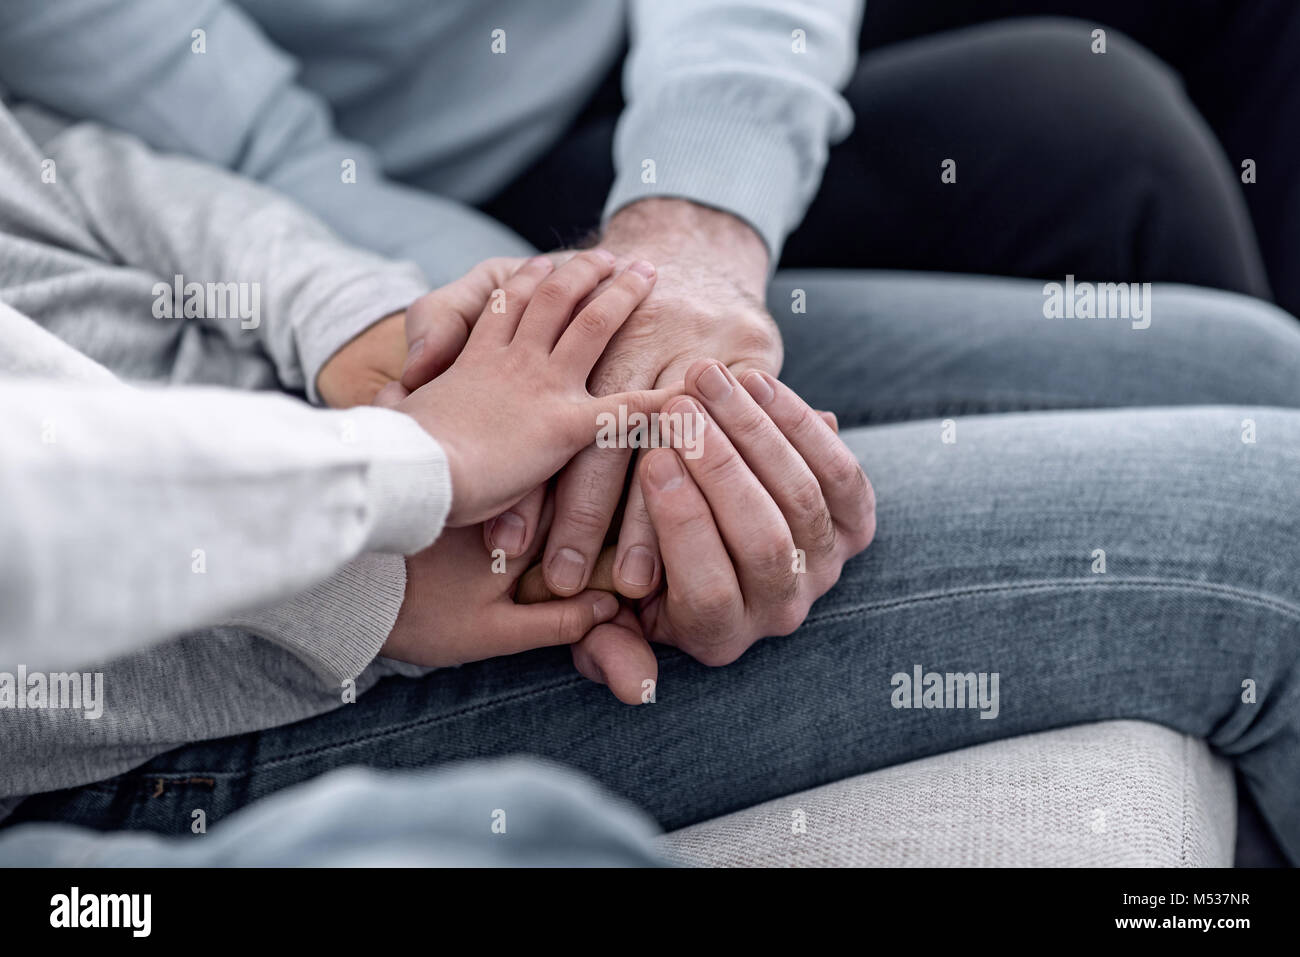 Little boy putting his hand on the hands of his parents - Stock Image